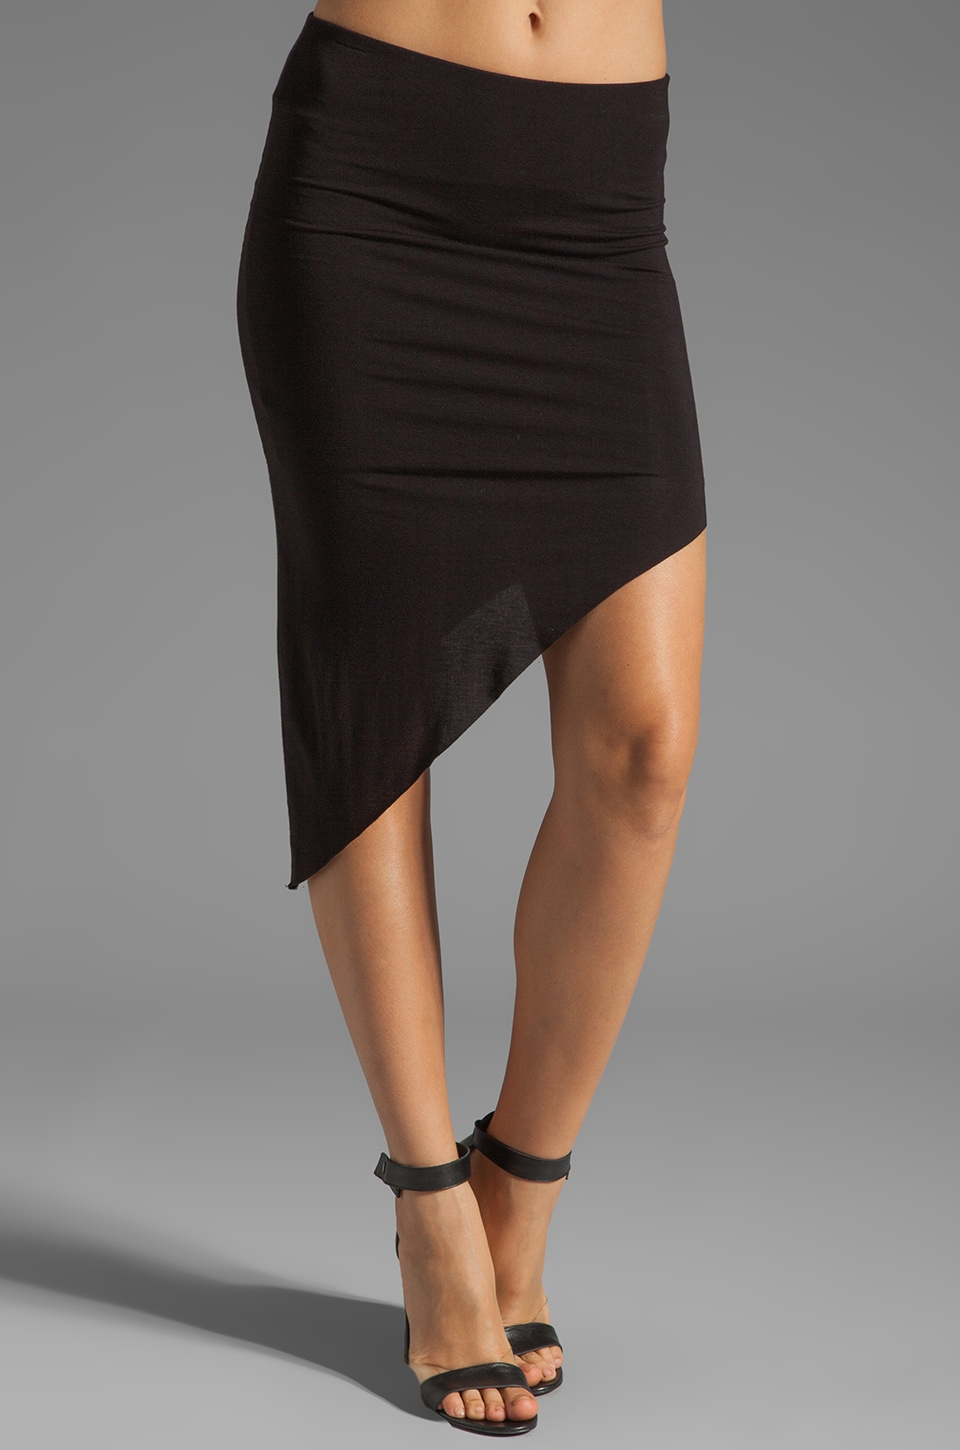 Bailey 44 Shark Tooth Skirt in Black